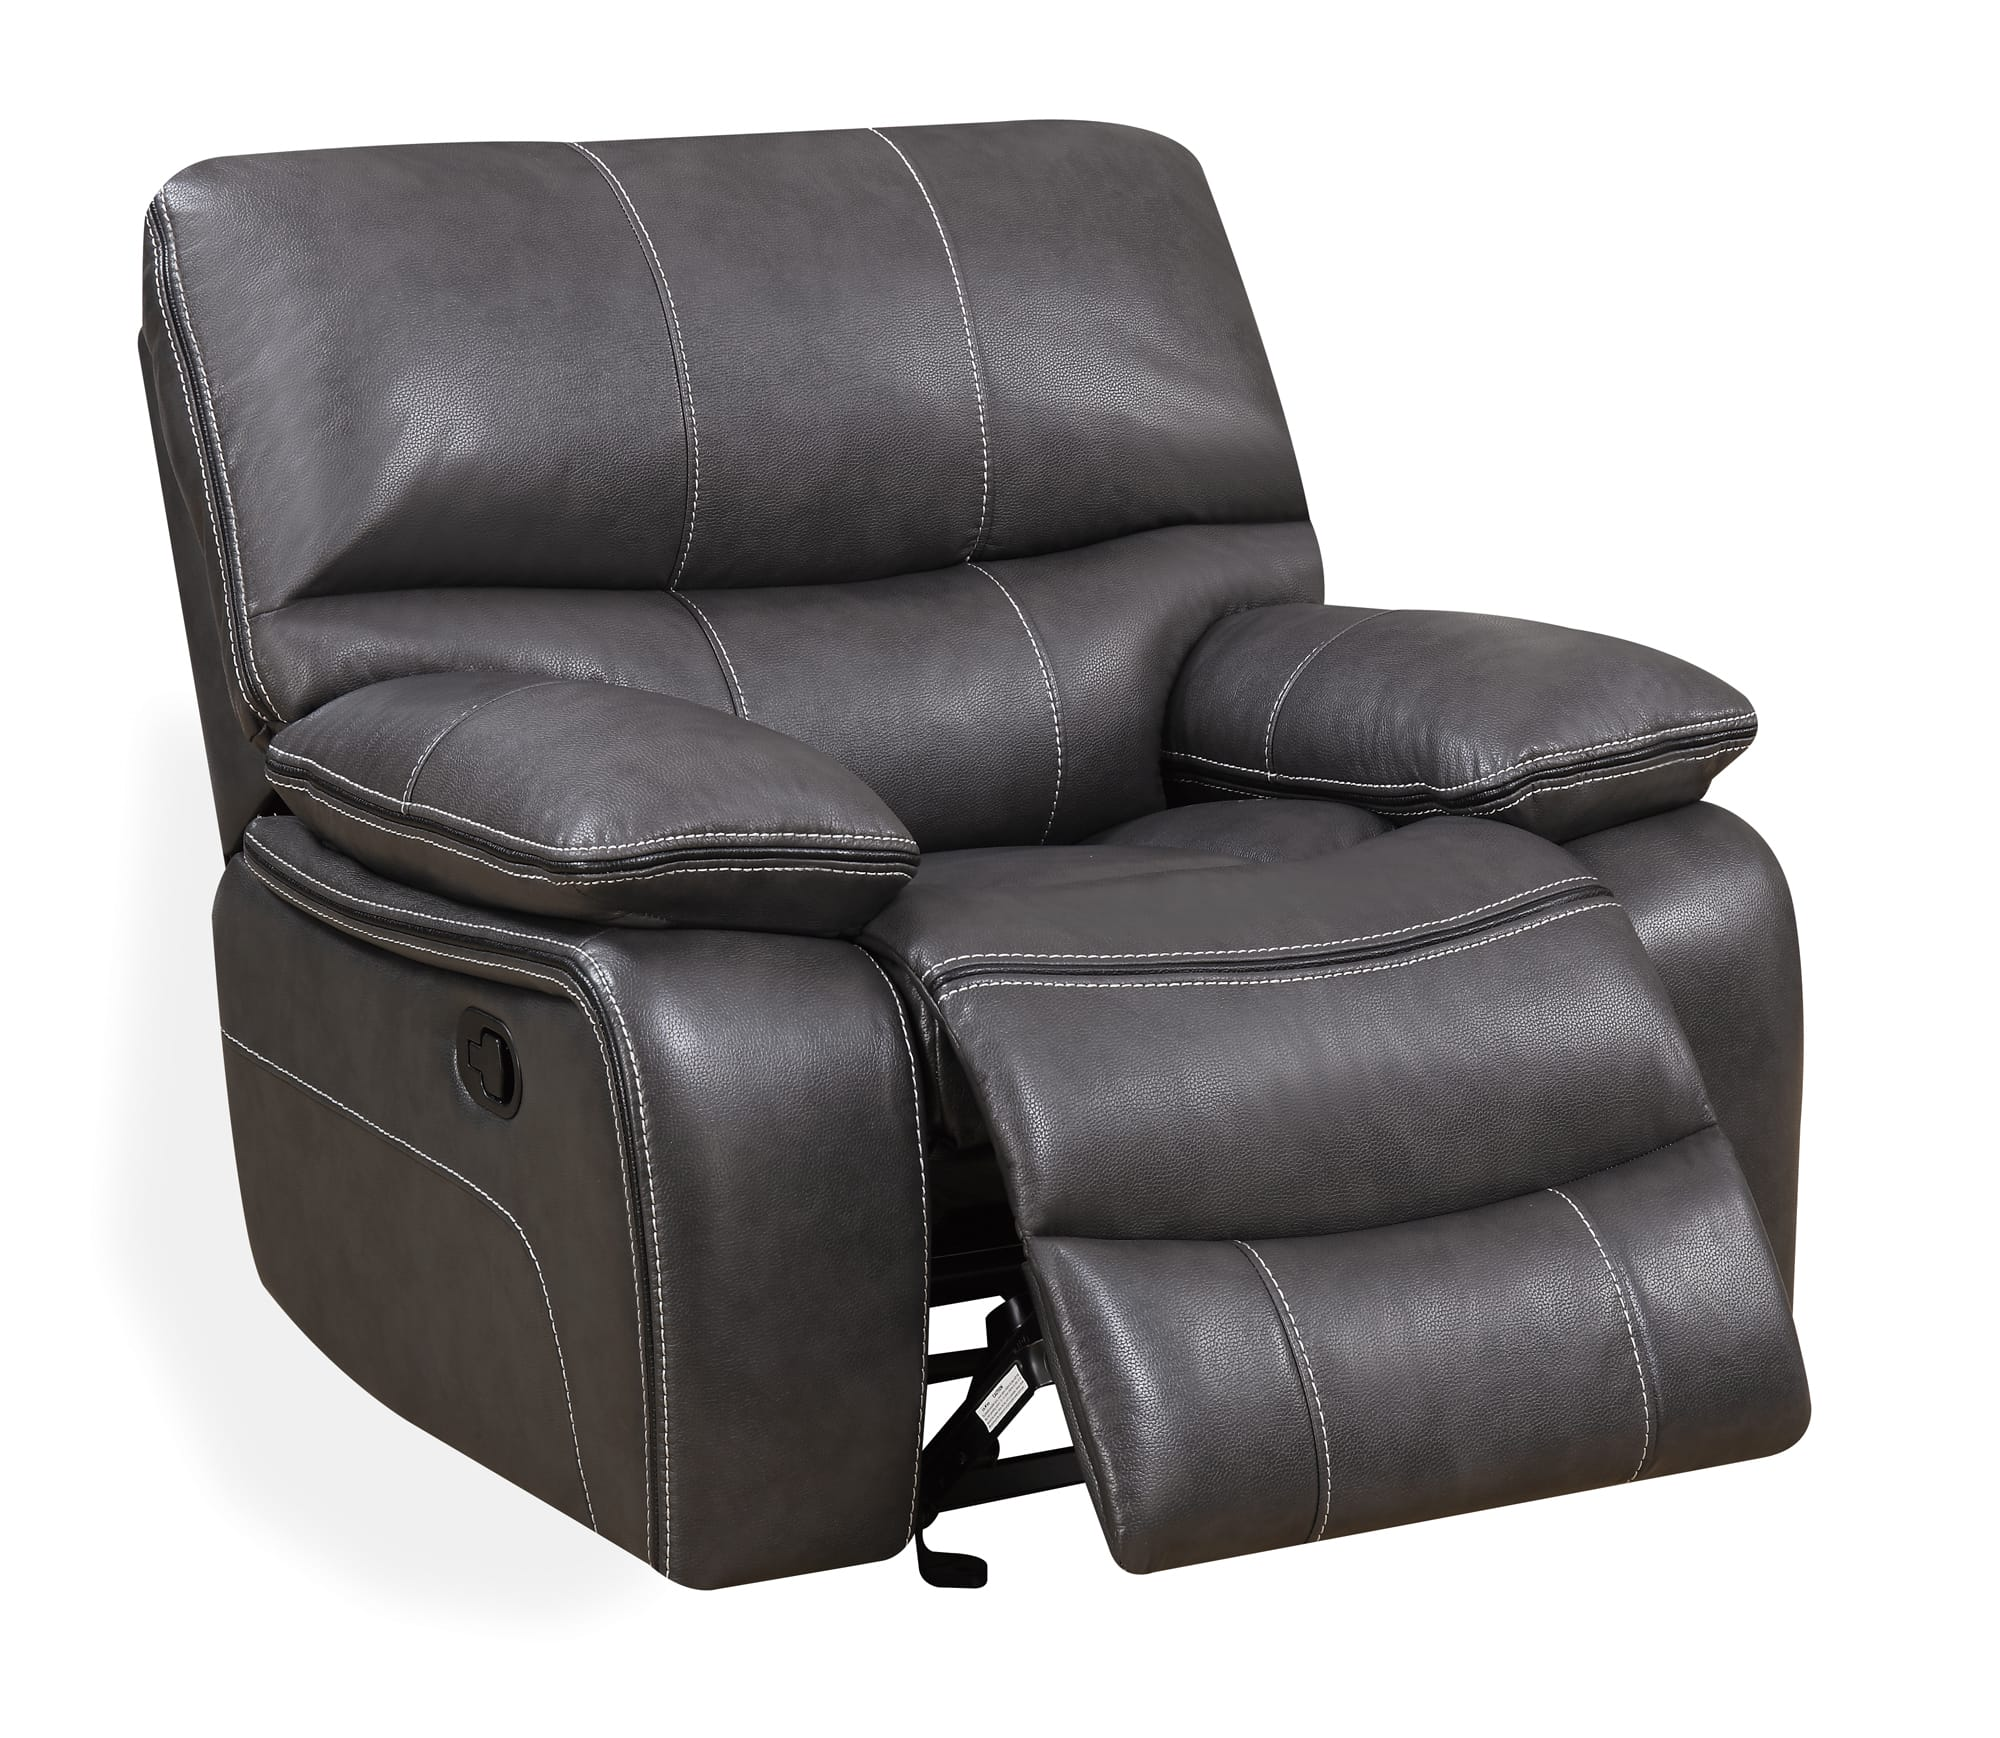 U0040 GreyBlack Leather Glider Reclining Chair By Global